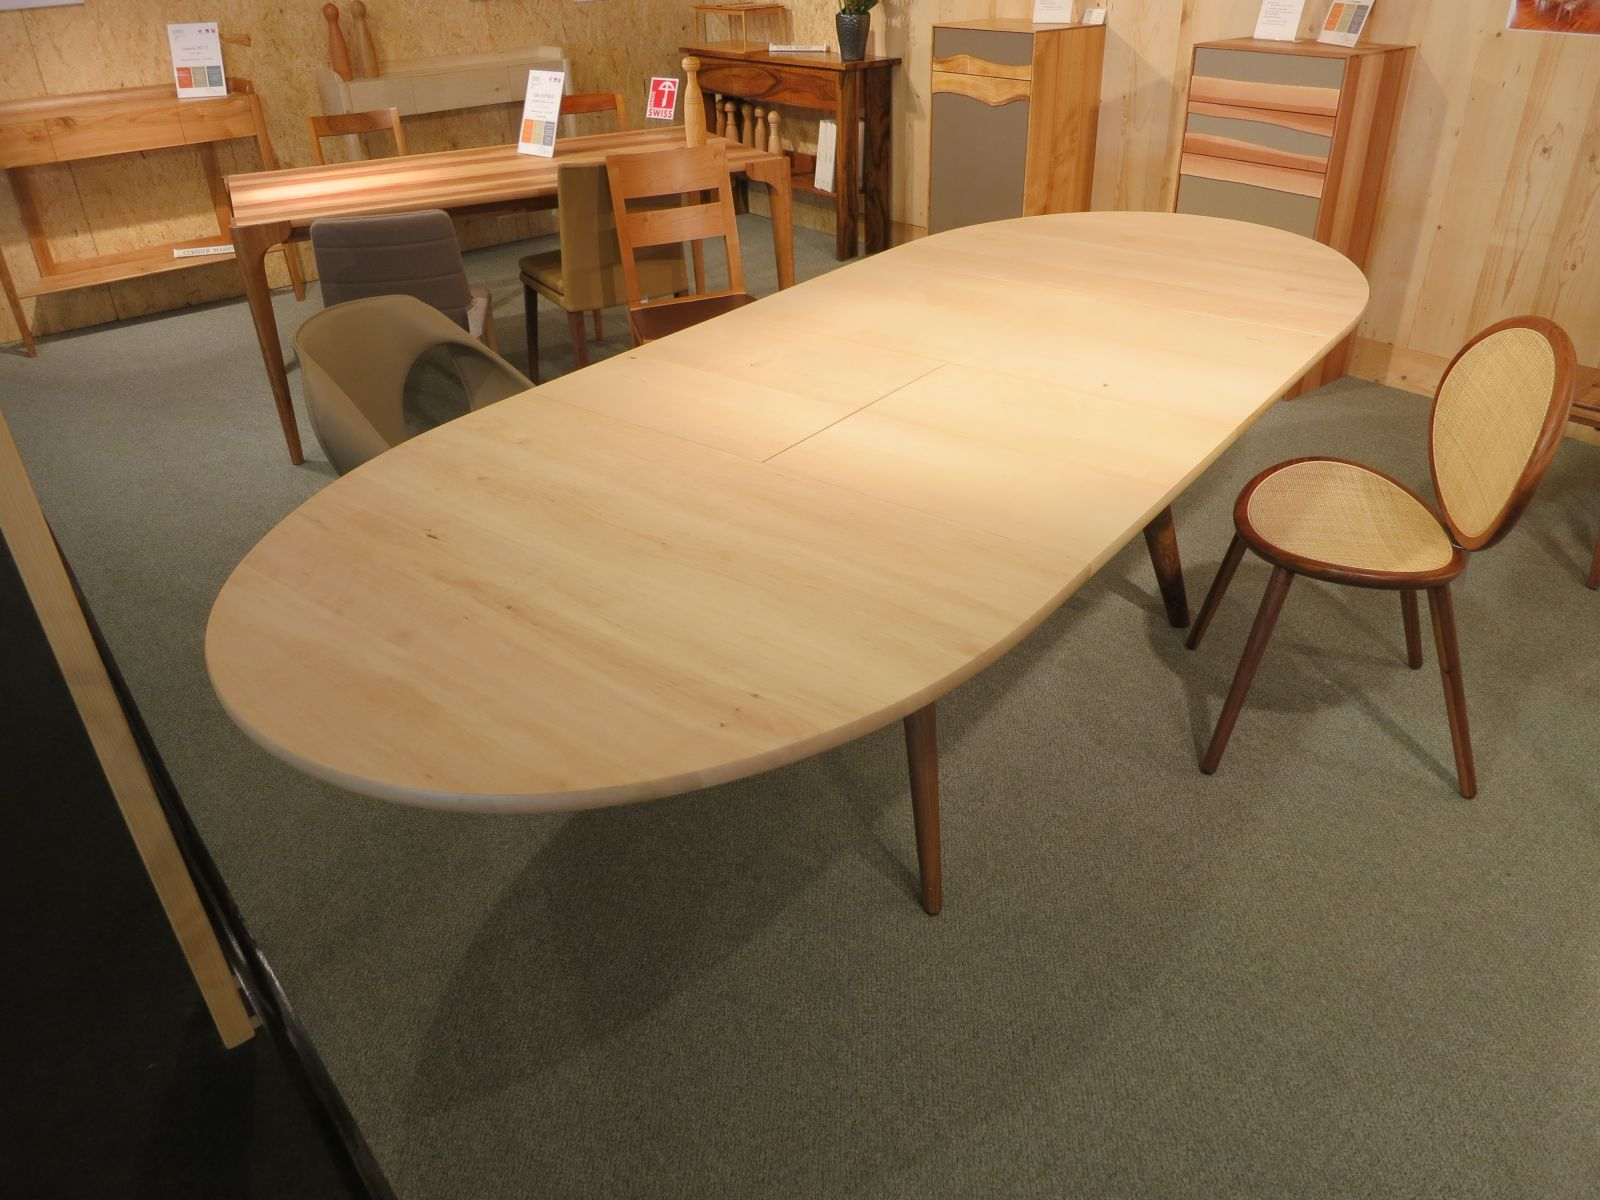 Sedarca fabricant suisse de chaises et tables tablis d for Table avec rallonge incorporee